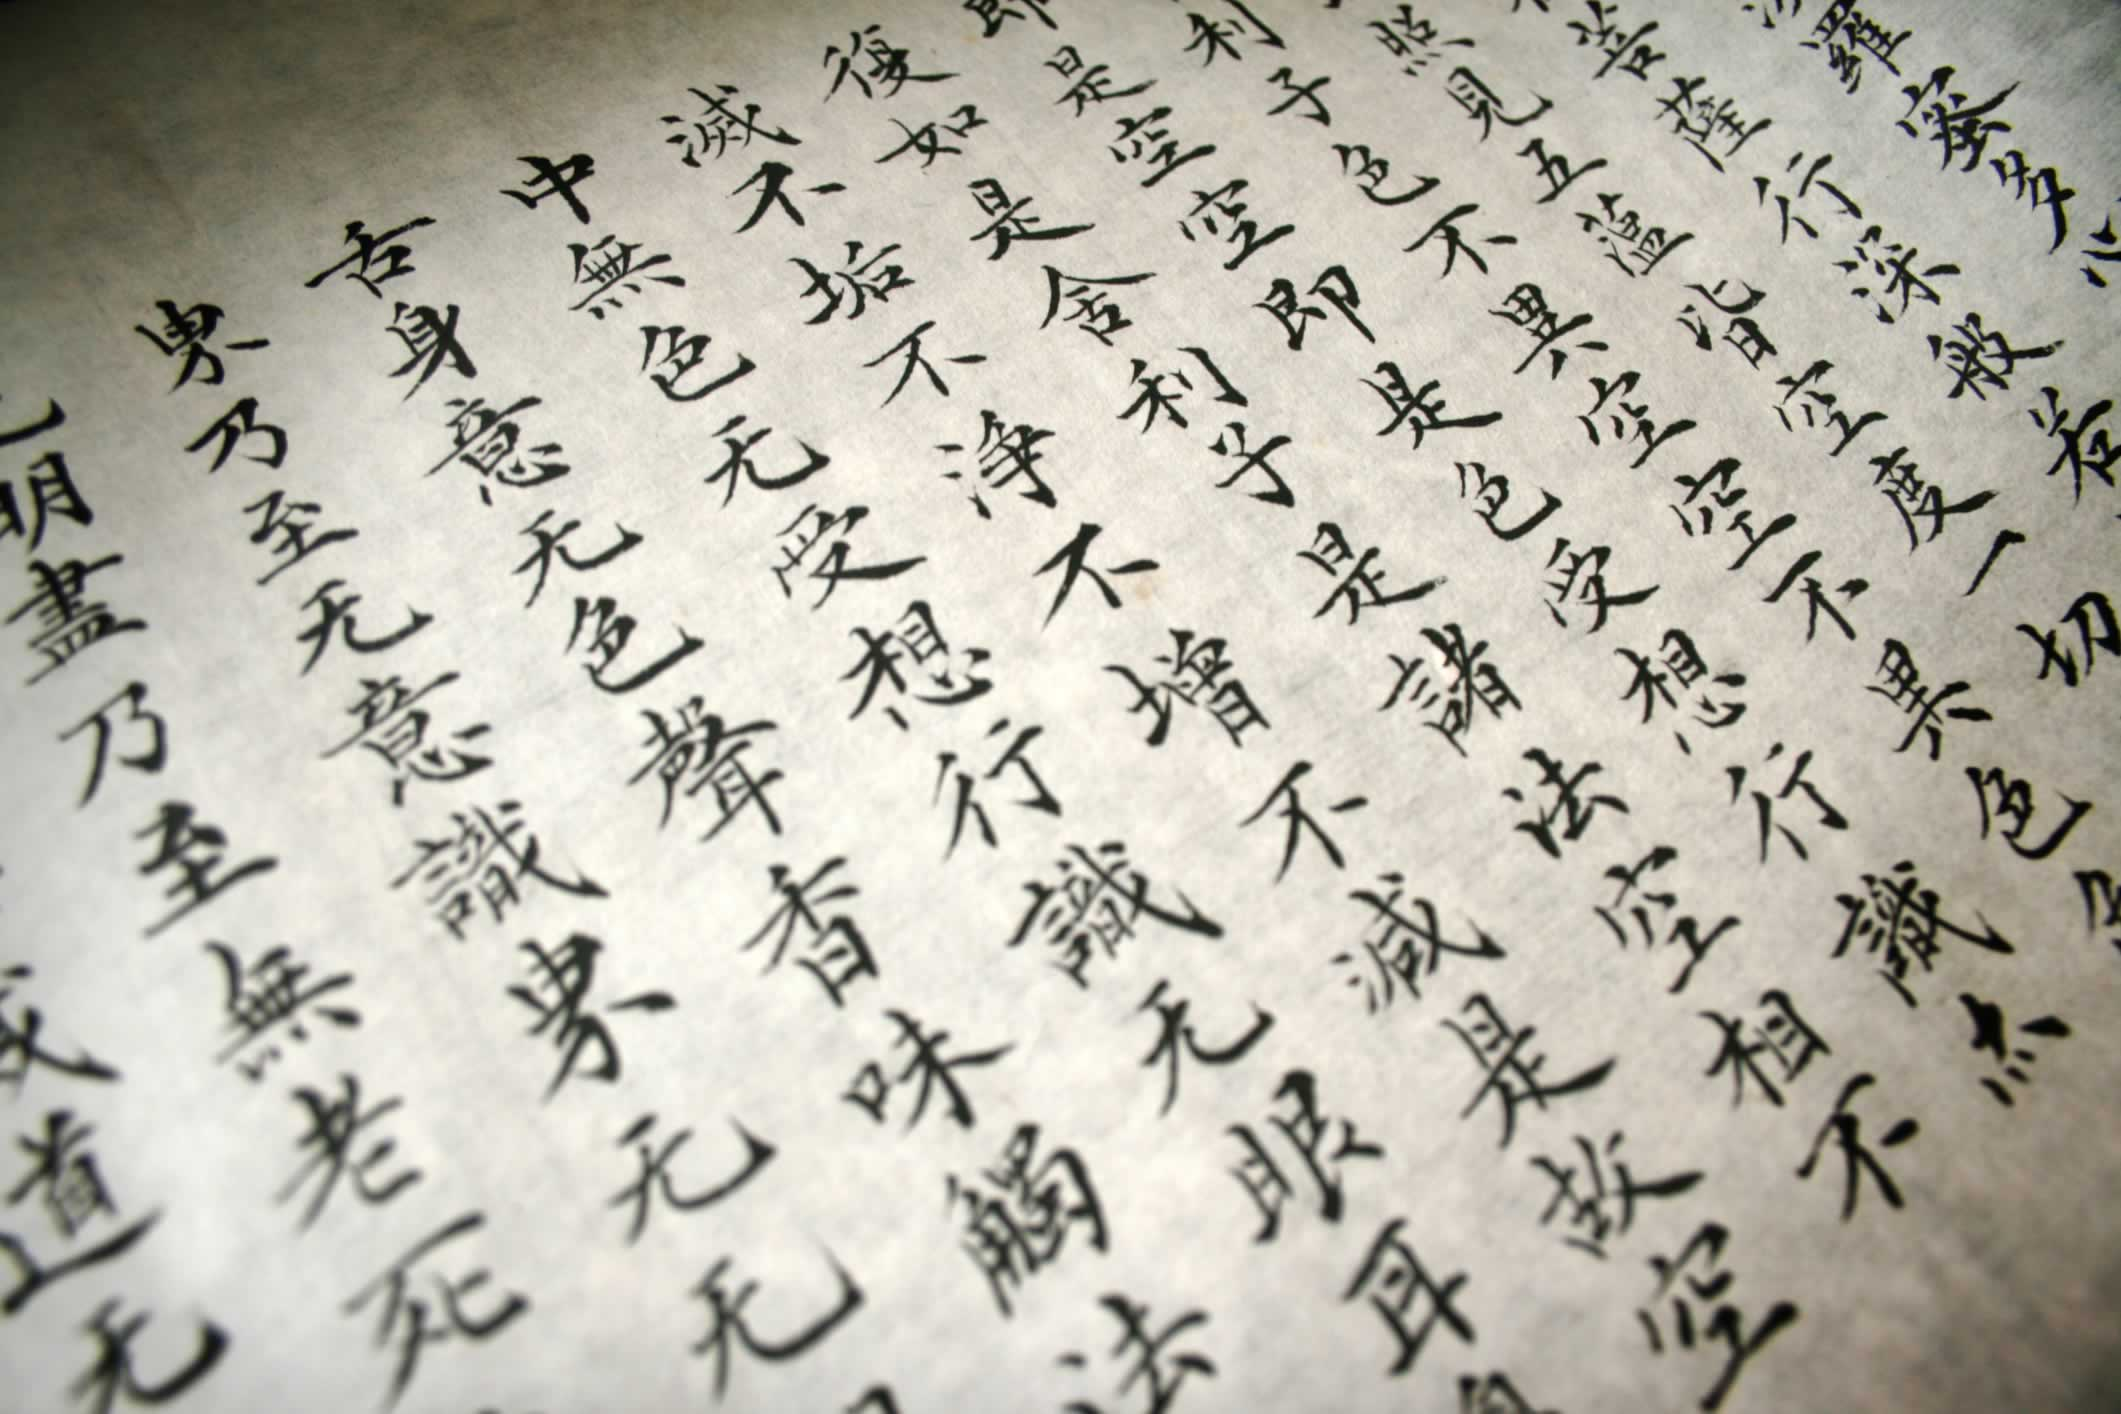 A poem about wisdom written in Chinese calligraphy